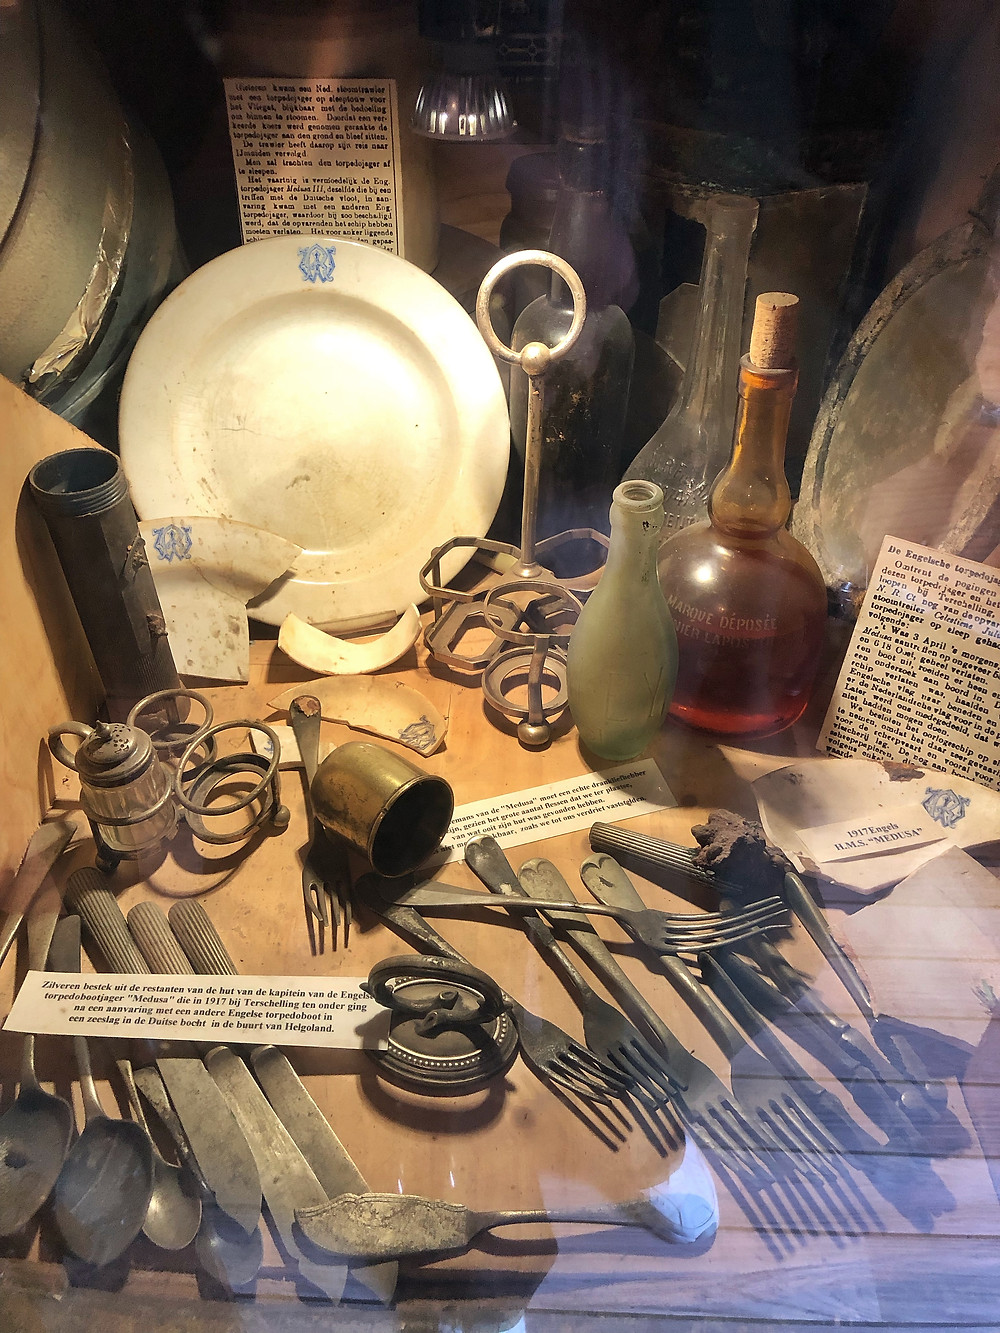 Collection of the Shipwreck meuseum at Terschelling